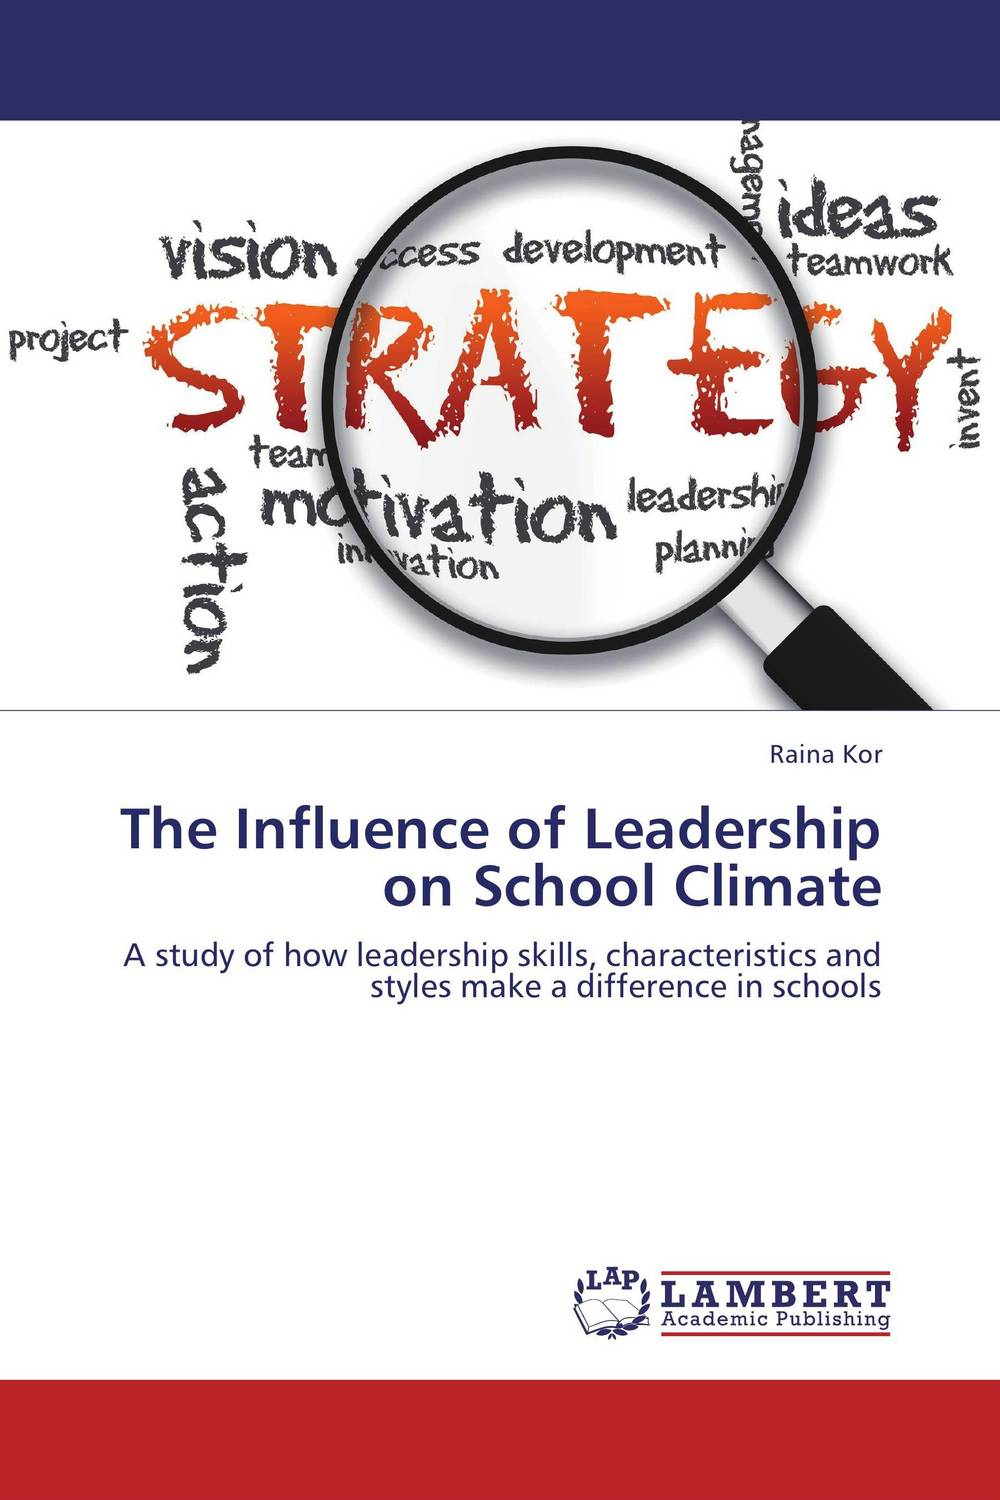 The Influence of Leadership on School Climate role of school leadership in promoting moral integrity among students